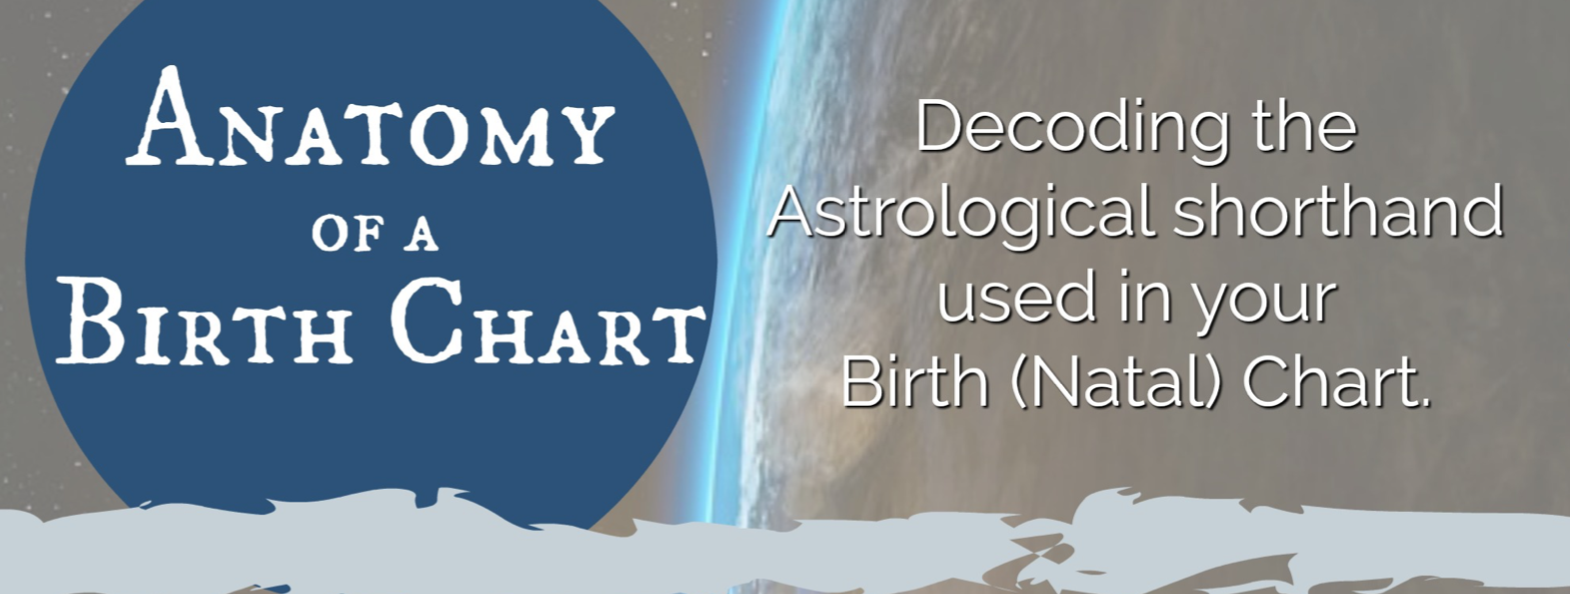 FREE Anatomy of a Birthchart, Astrology, glyphs, Hilary Harley, astrologer, natal chart